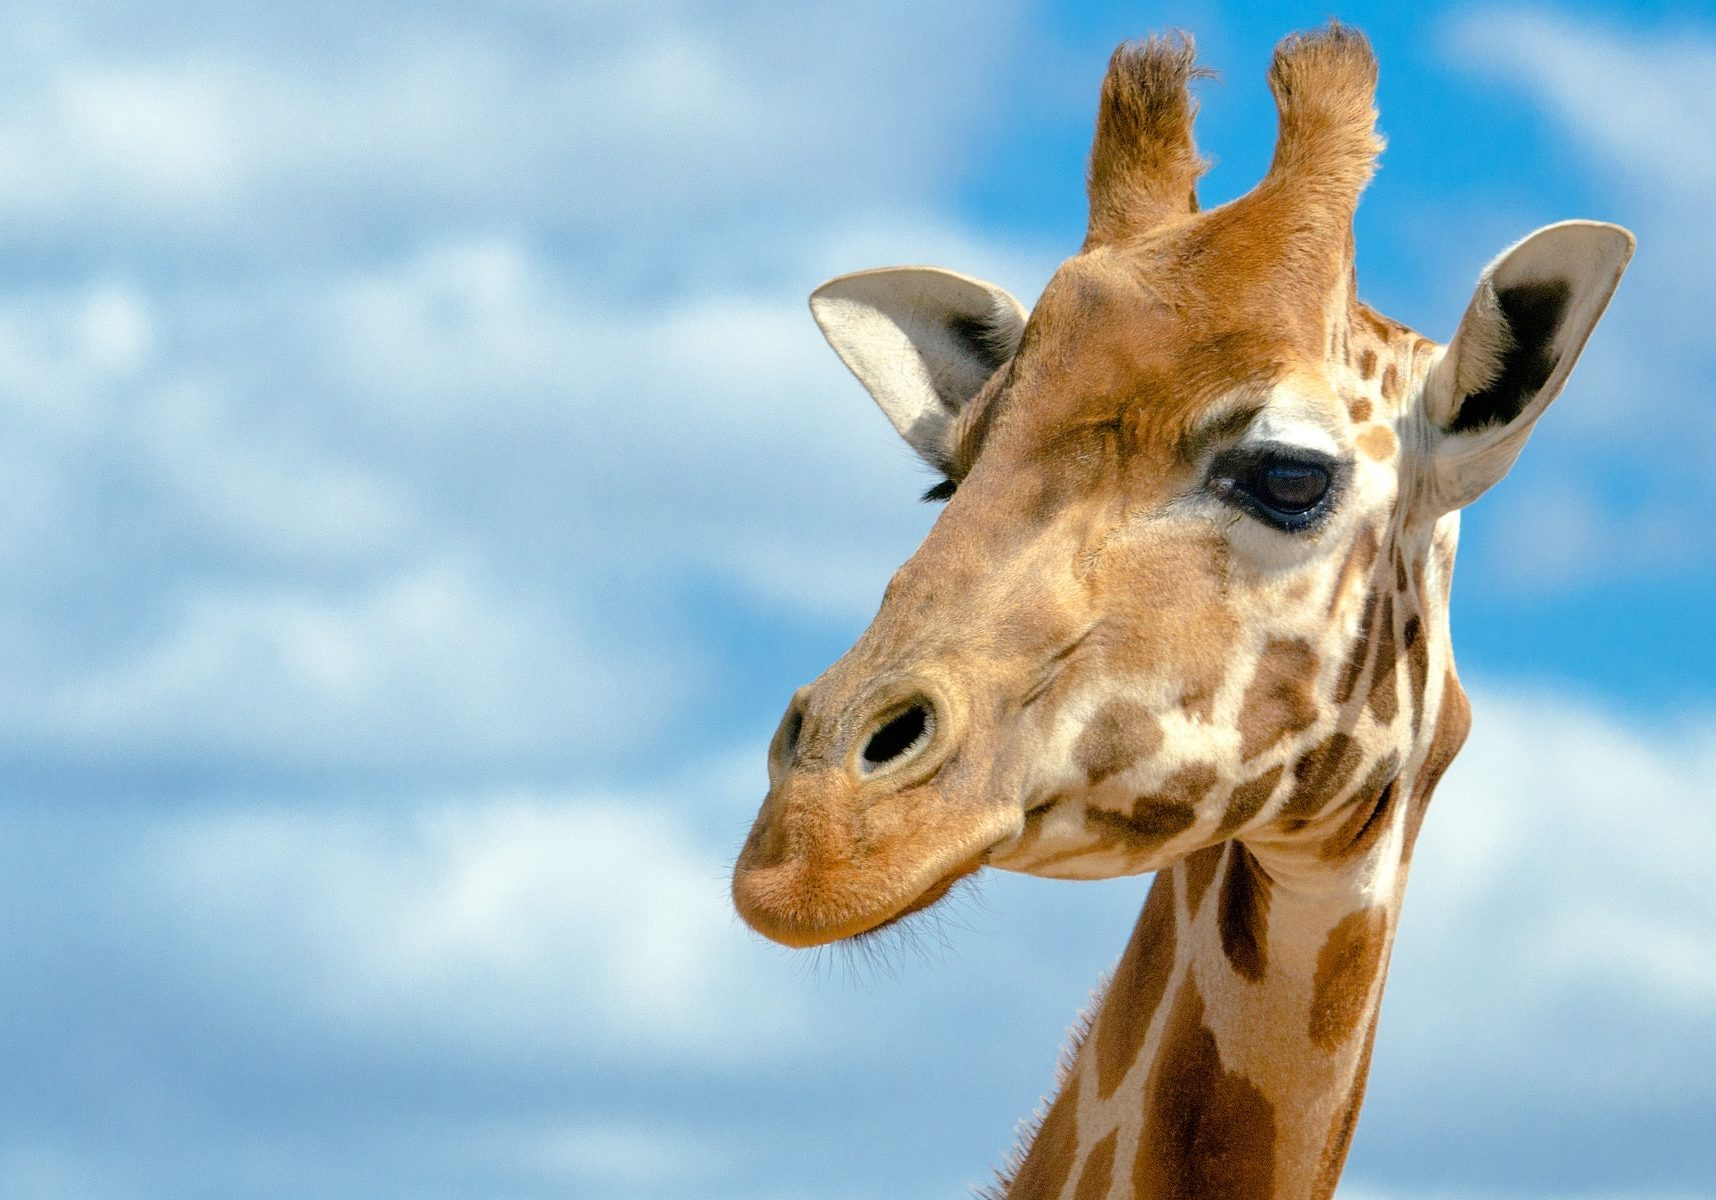 Giraffe Facts 3